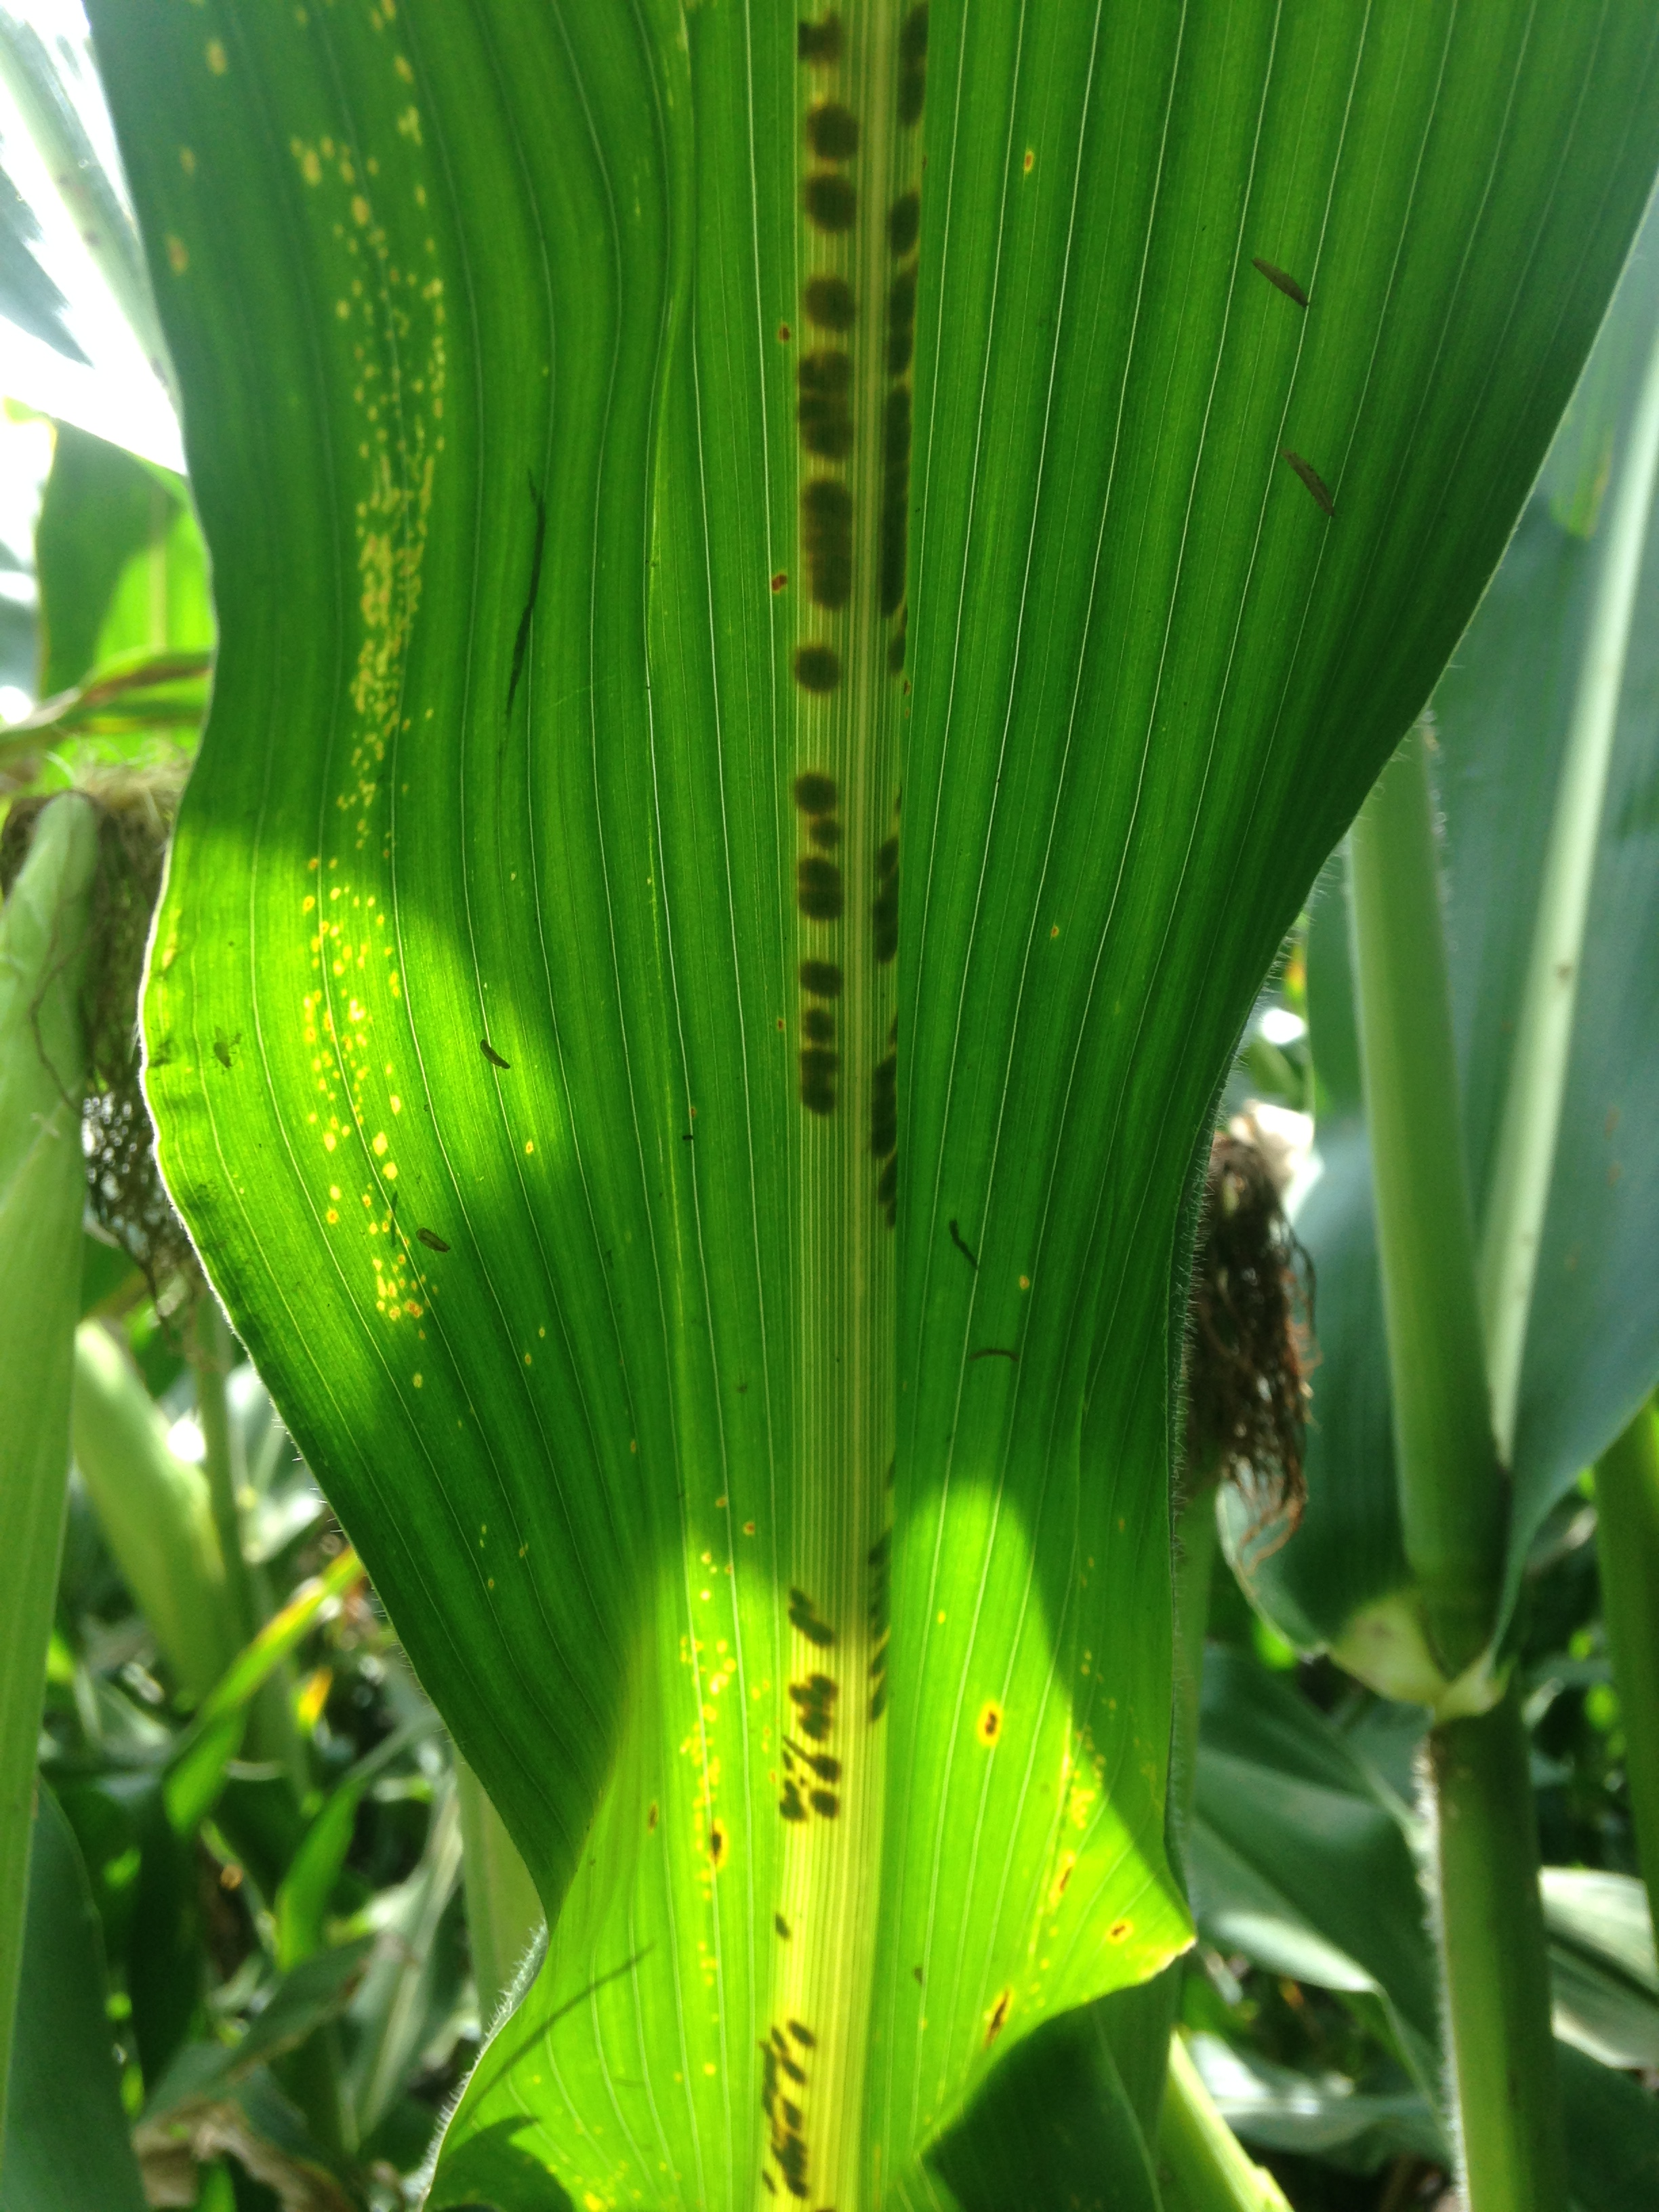 Dark spots occur on the midrib of leaves showing symptoms of Physoderma brown spot.